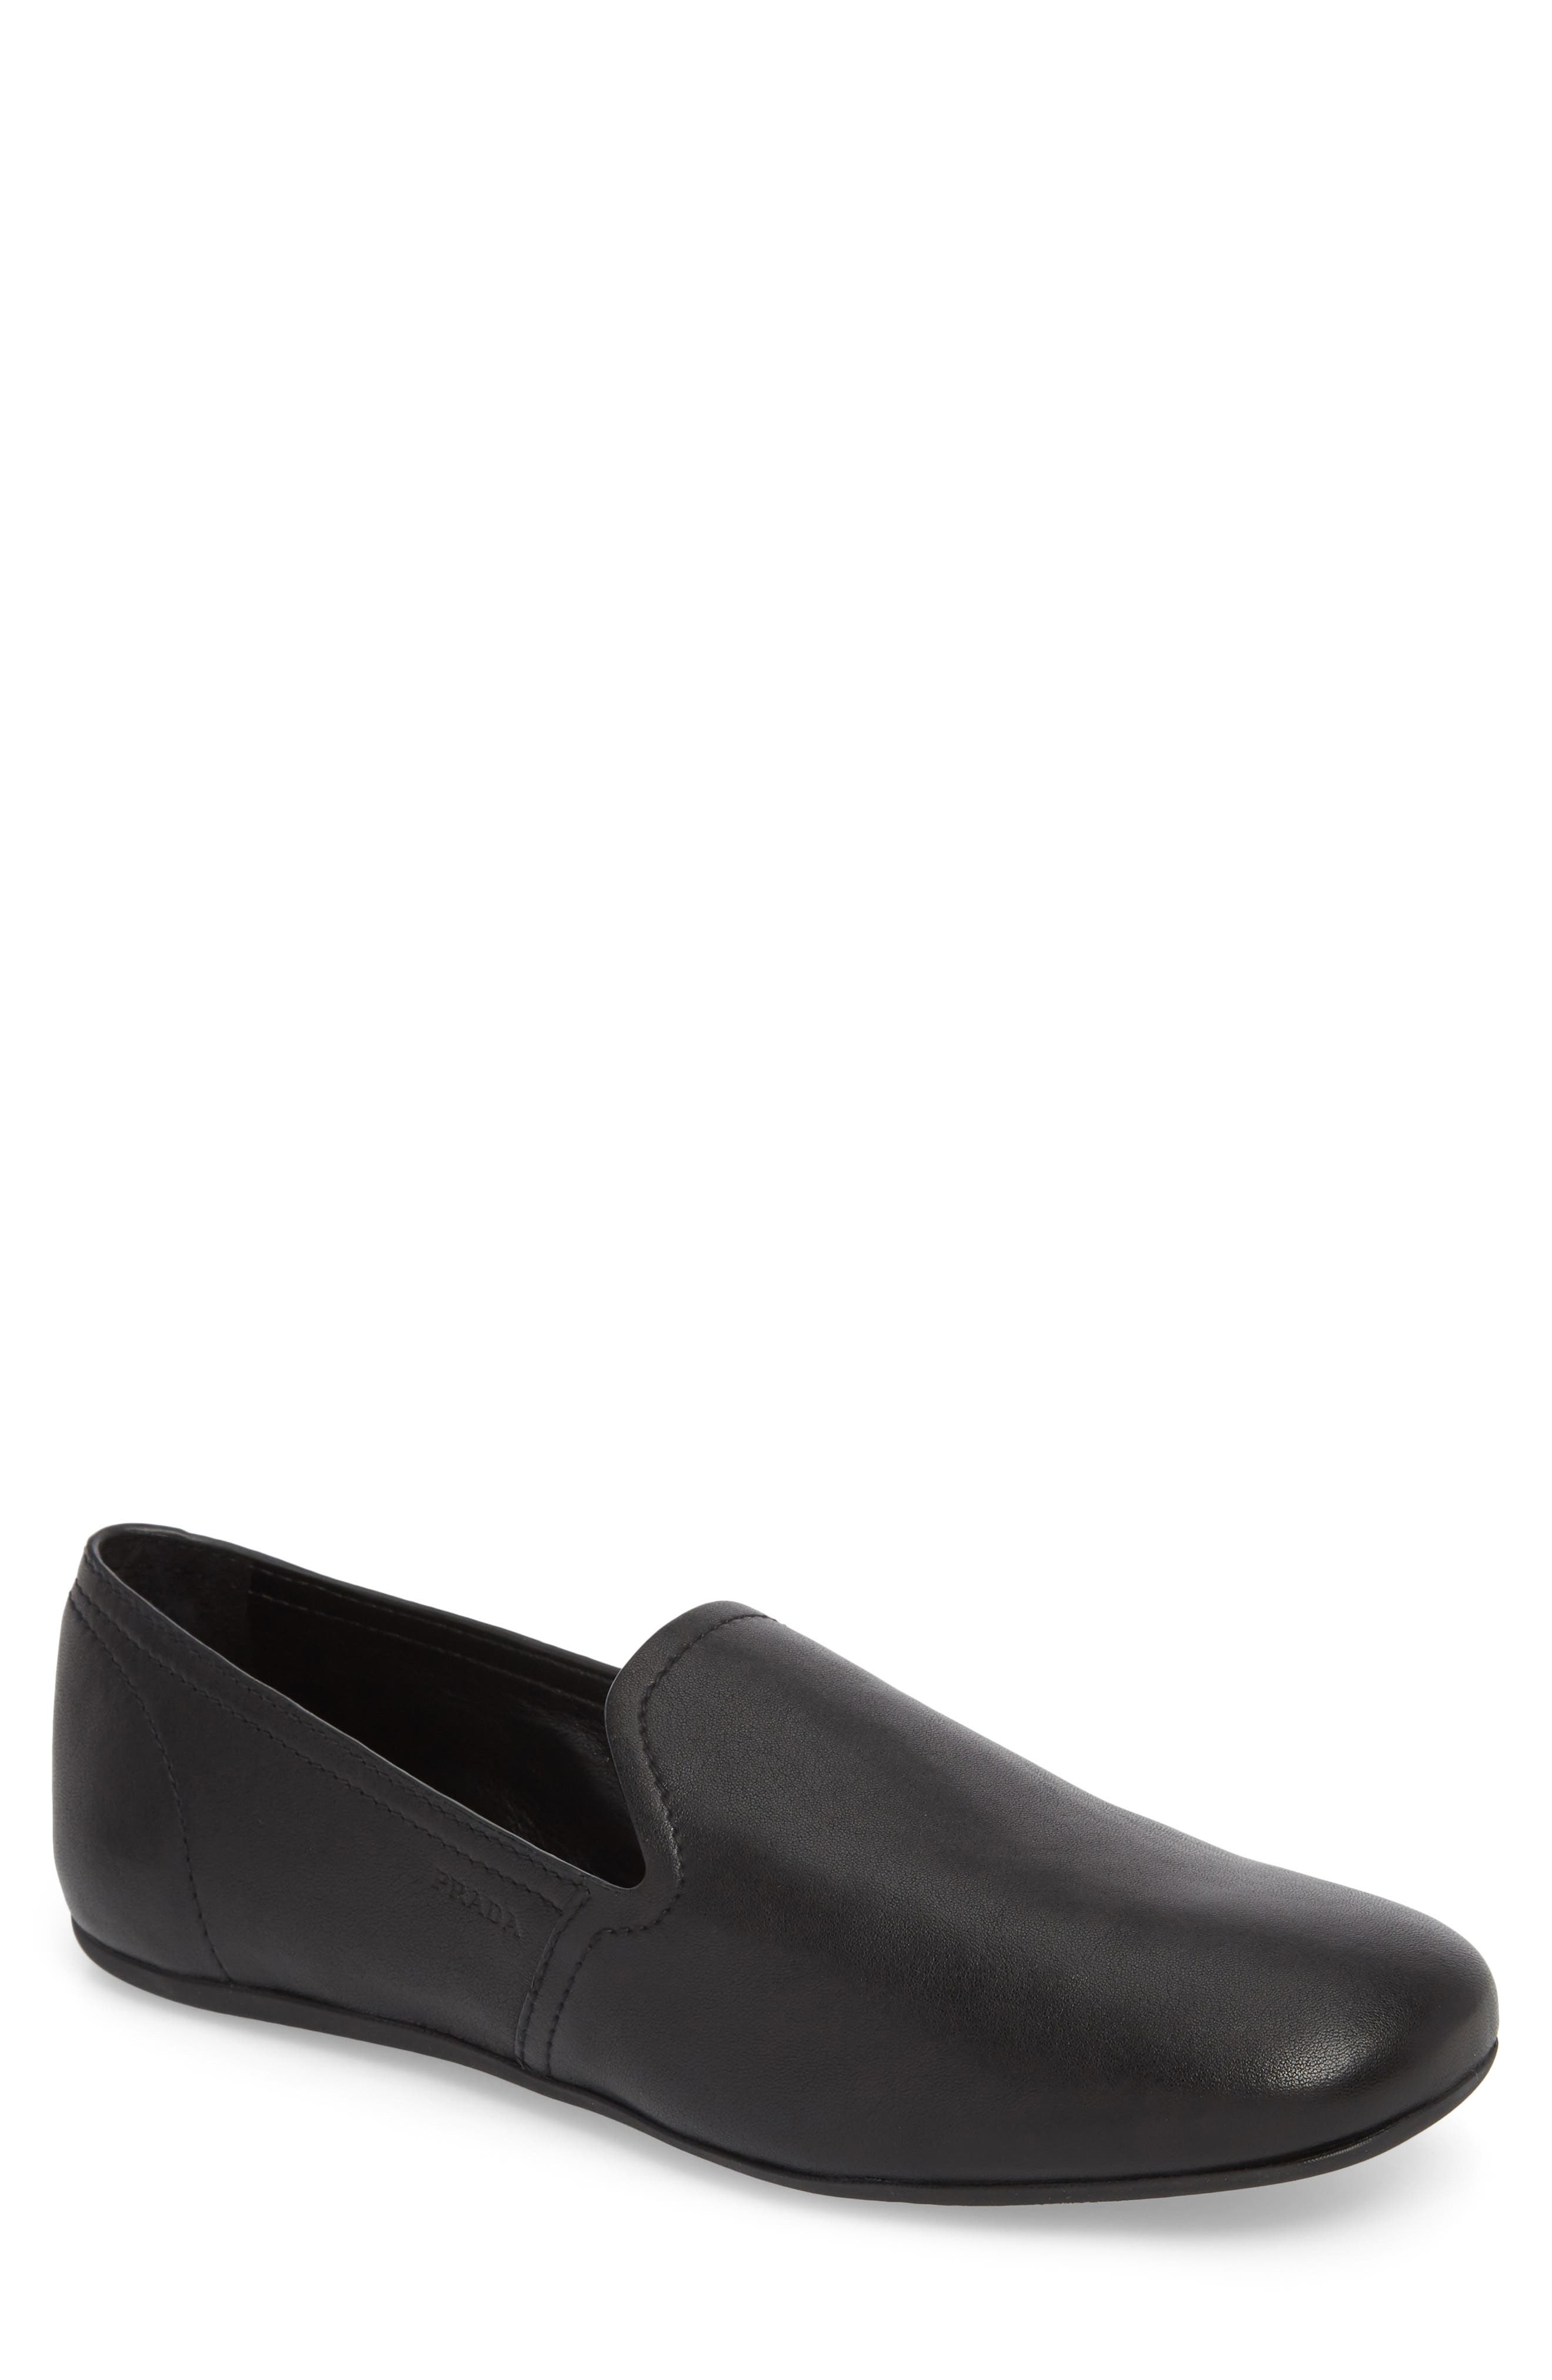 Prada Venetian Loafer (Men)